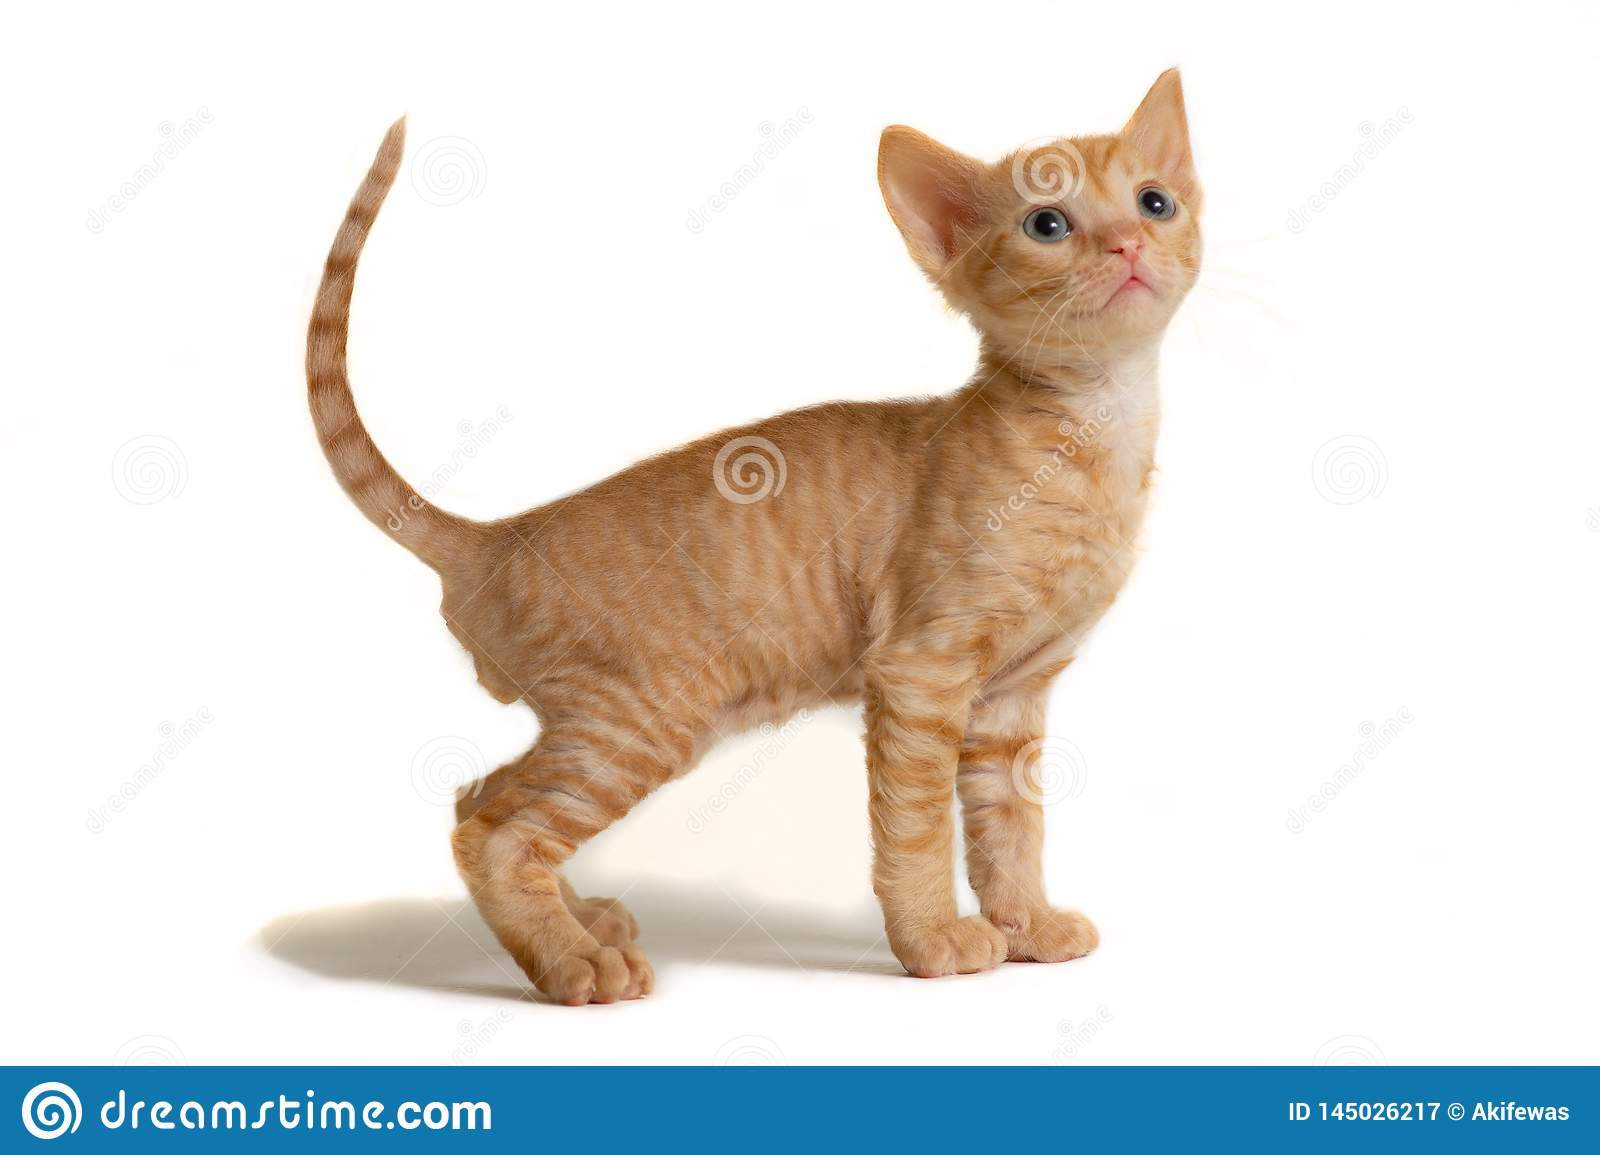 Little kitten Ural Rex stands and looks up, isolated on a white background